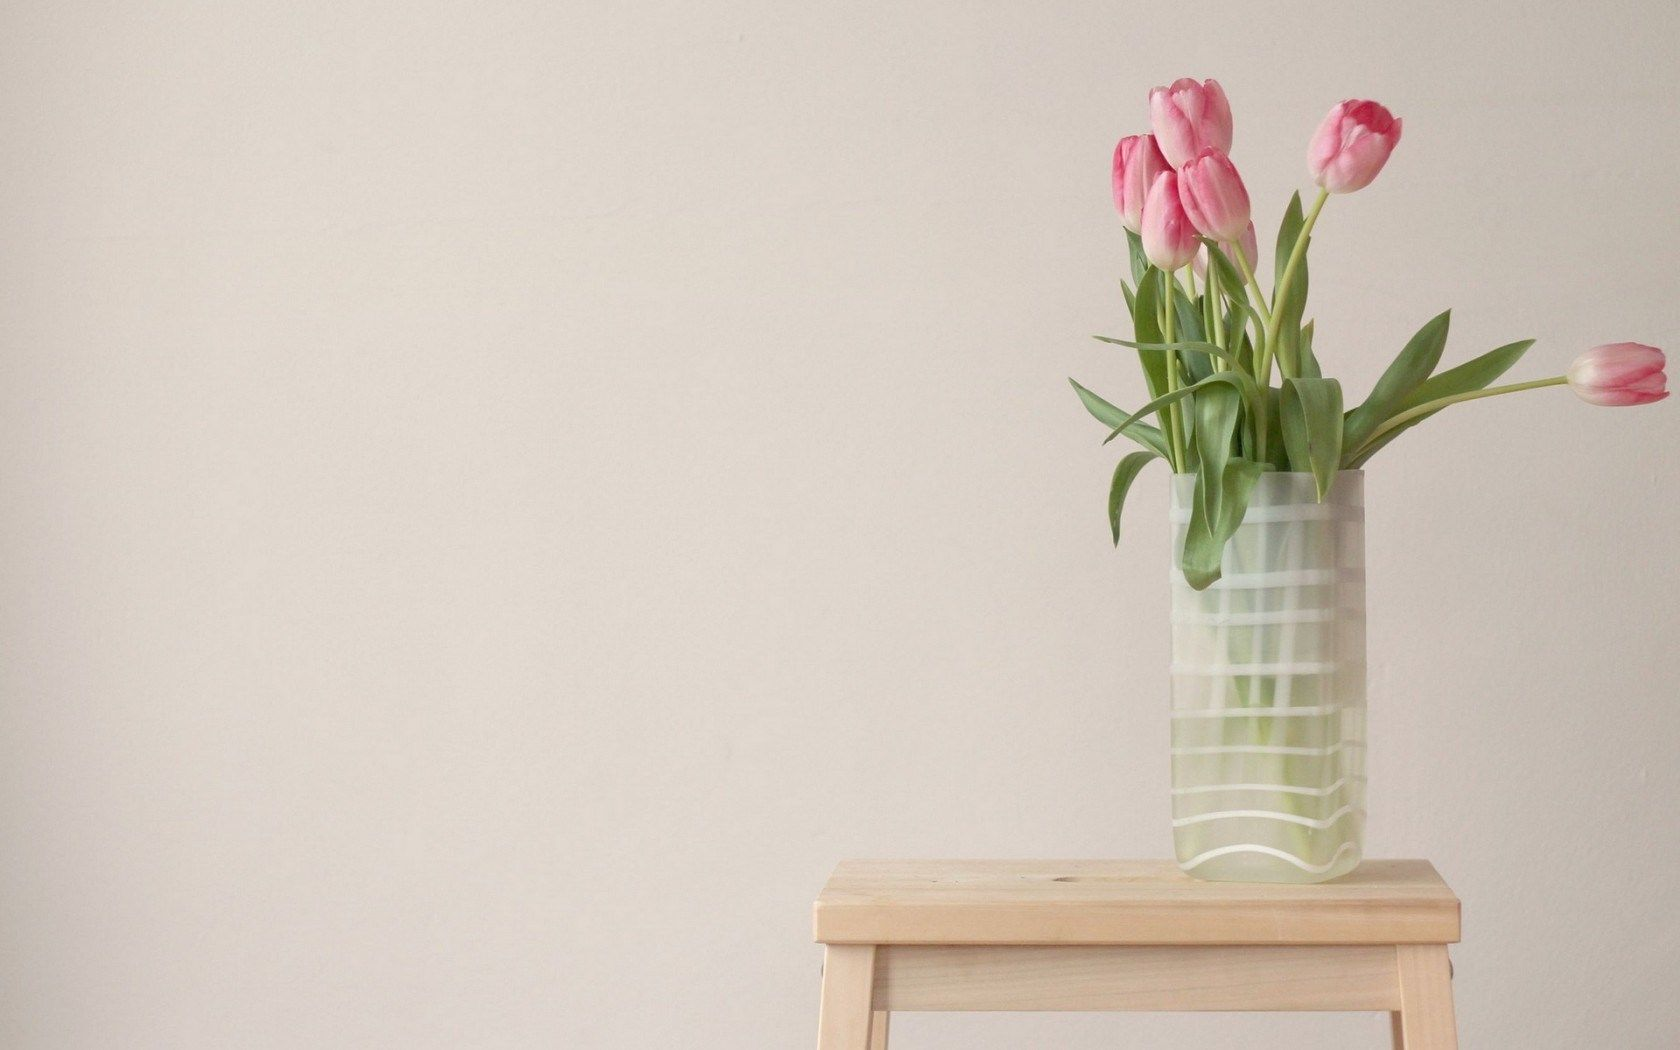 Vase Awesome Flowers Pink Tulips Table HD Wallpaper   ZoomWalls